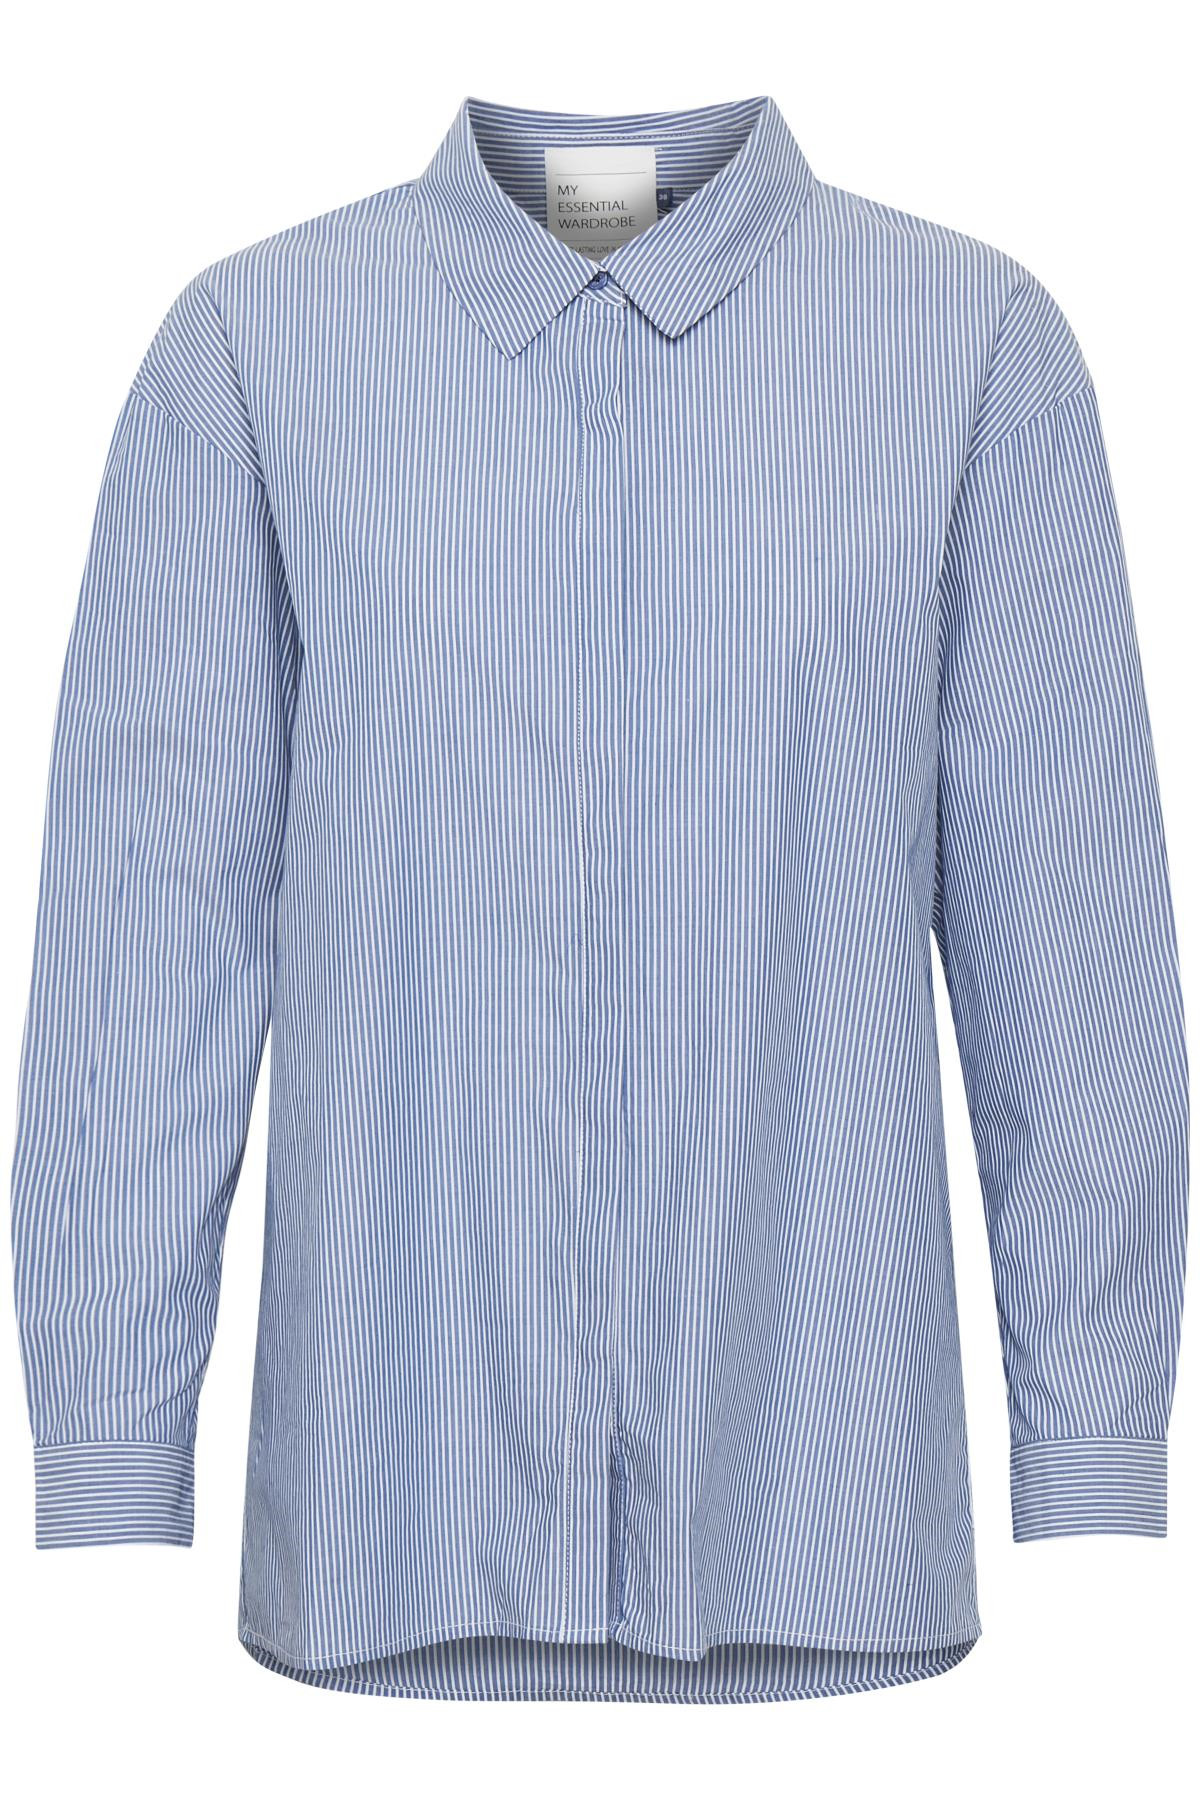 Image of   Denim Hunter 03 THE SHIRT 10702539 S (Striped Medium Blue 38076, 42)